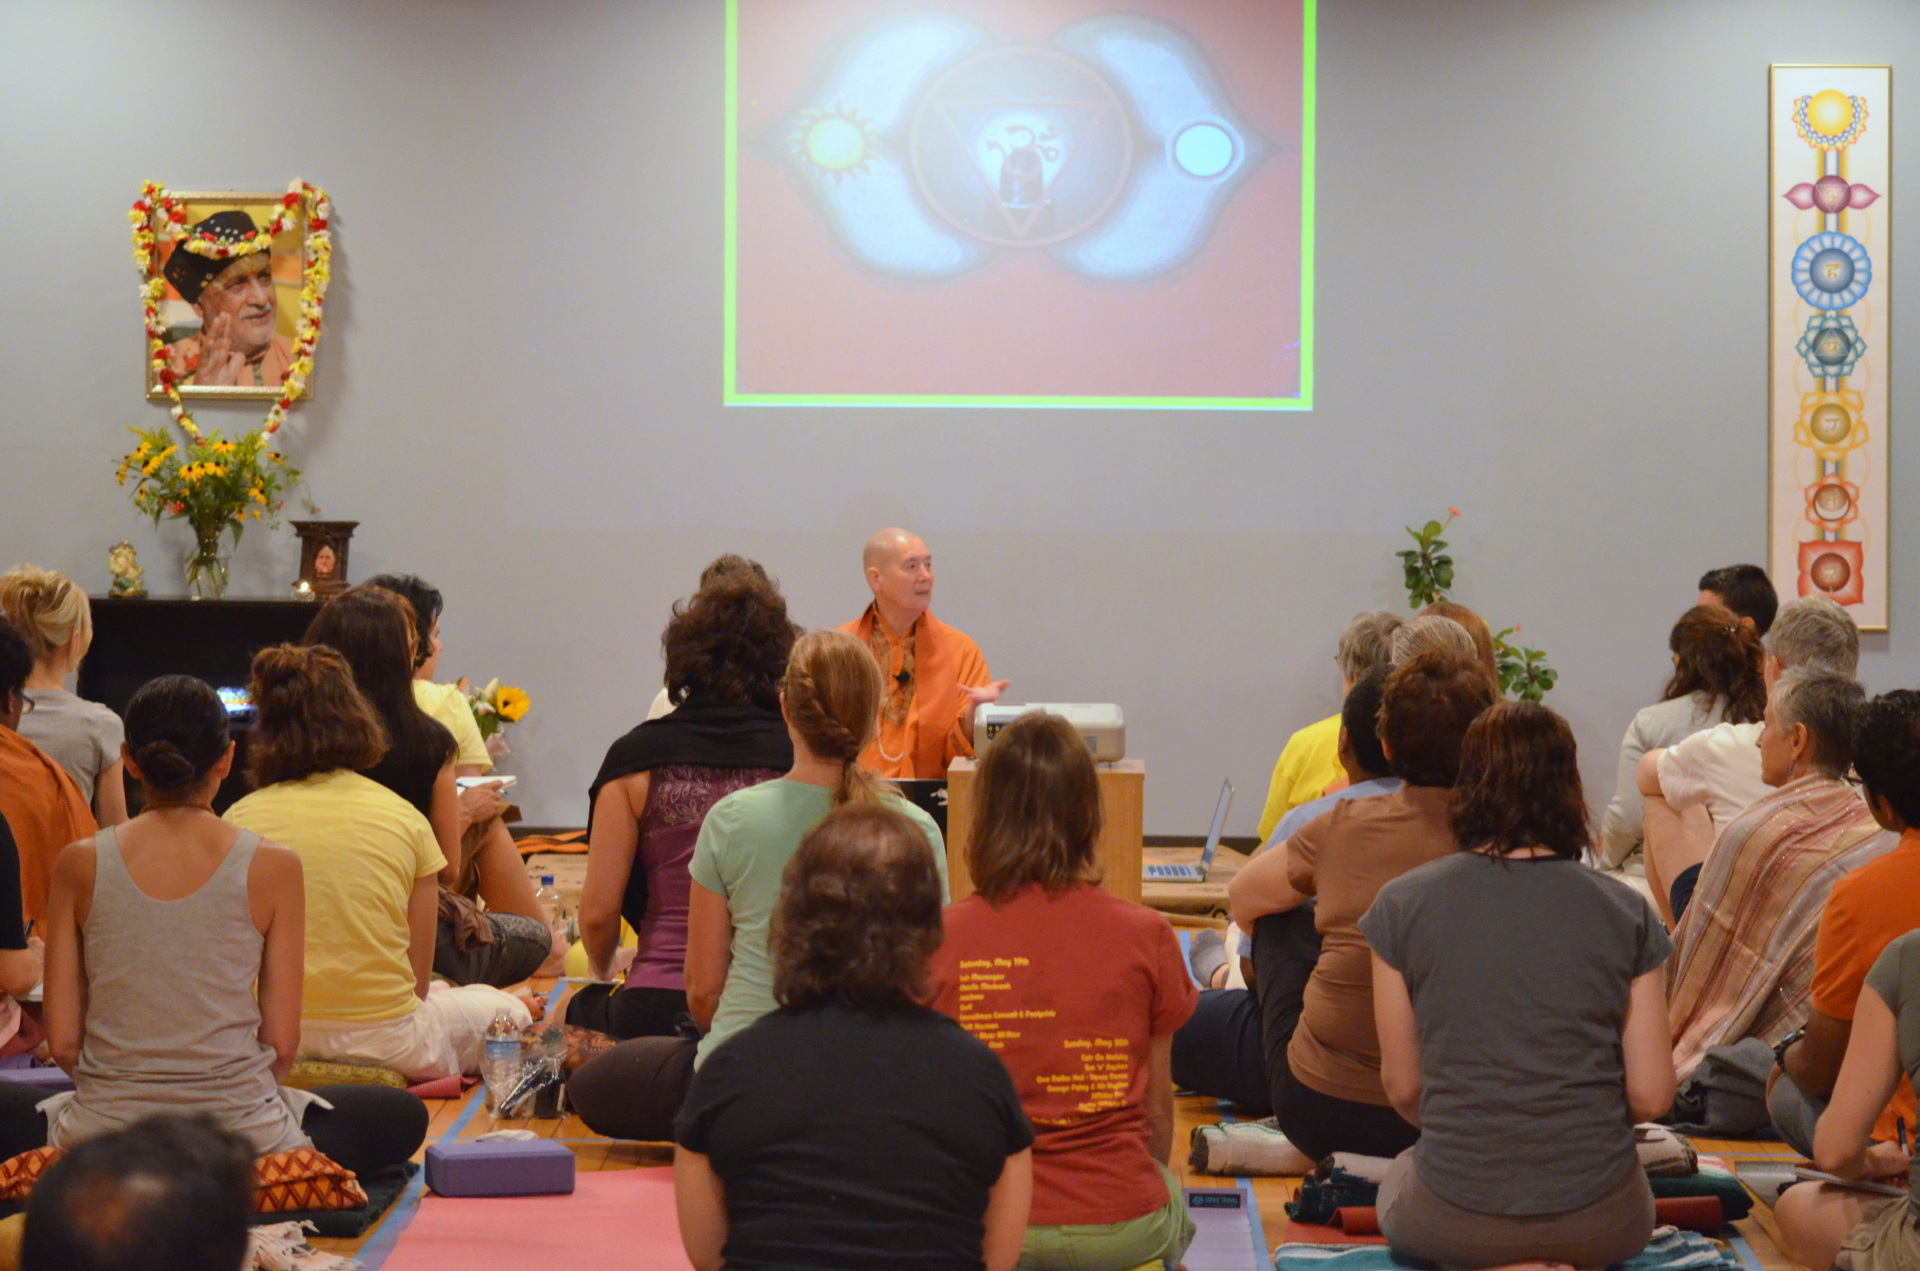 Swami Satyadharma teaching a workshop